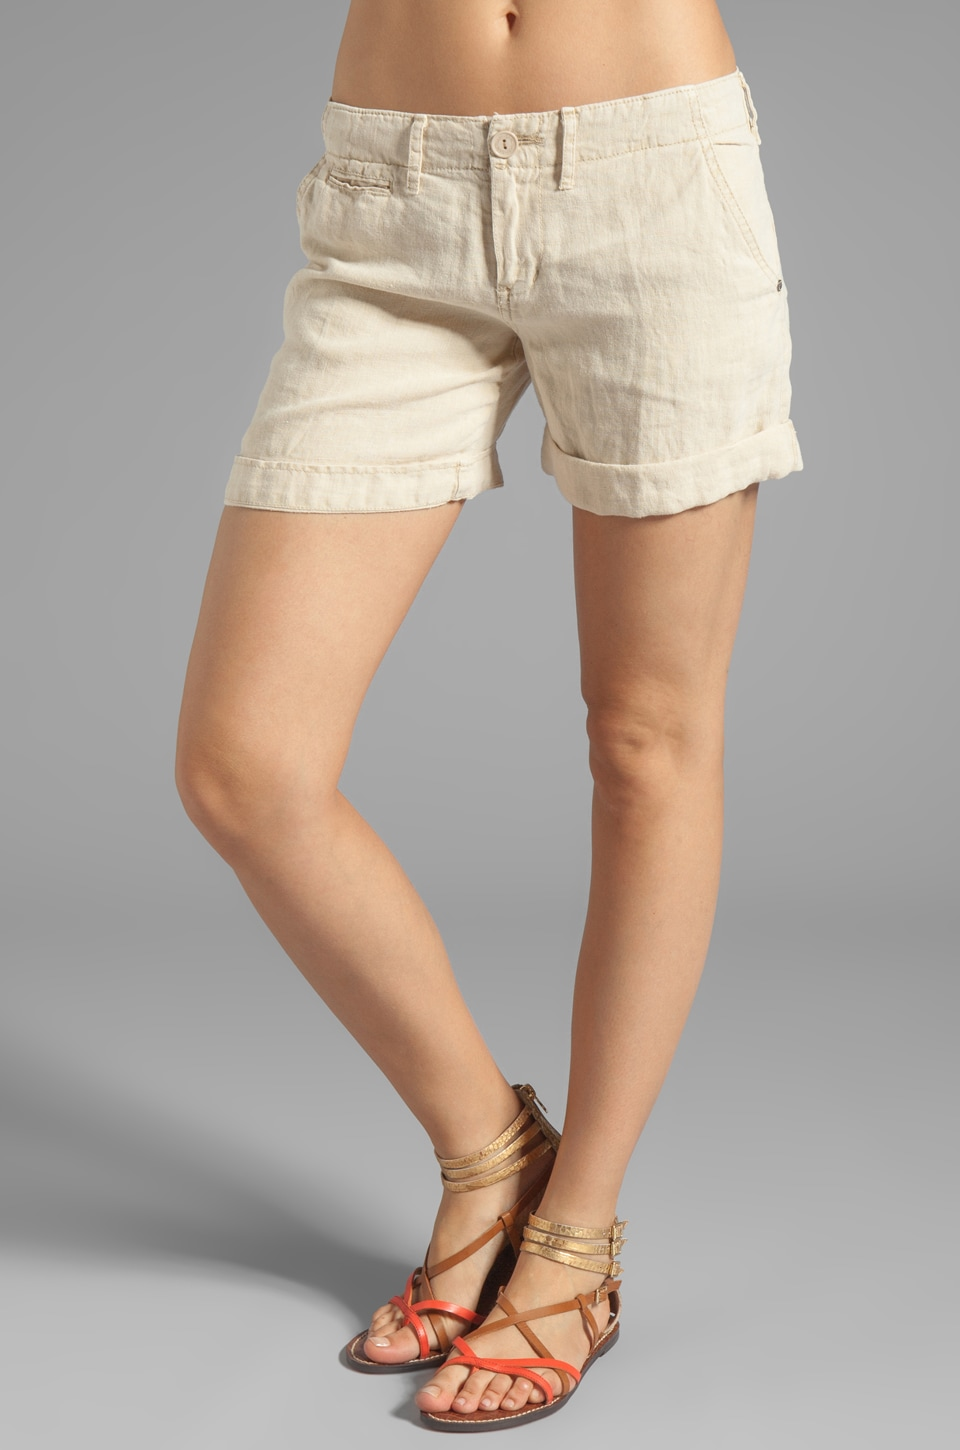 Sanctuary Linen Sunday Liberty Roll Short in Sand